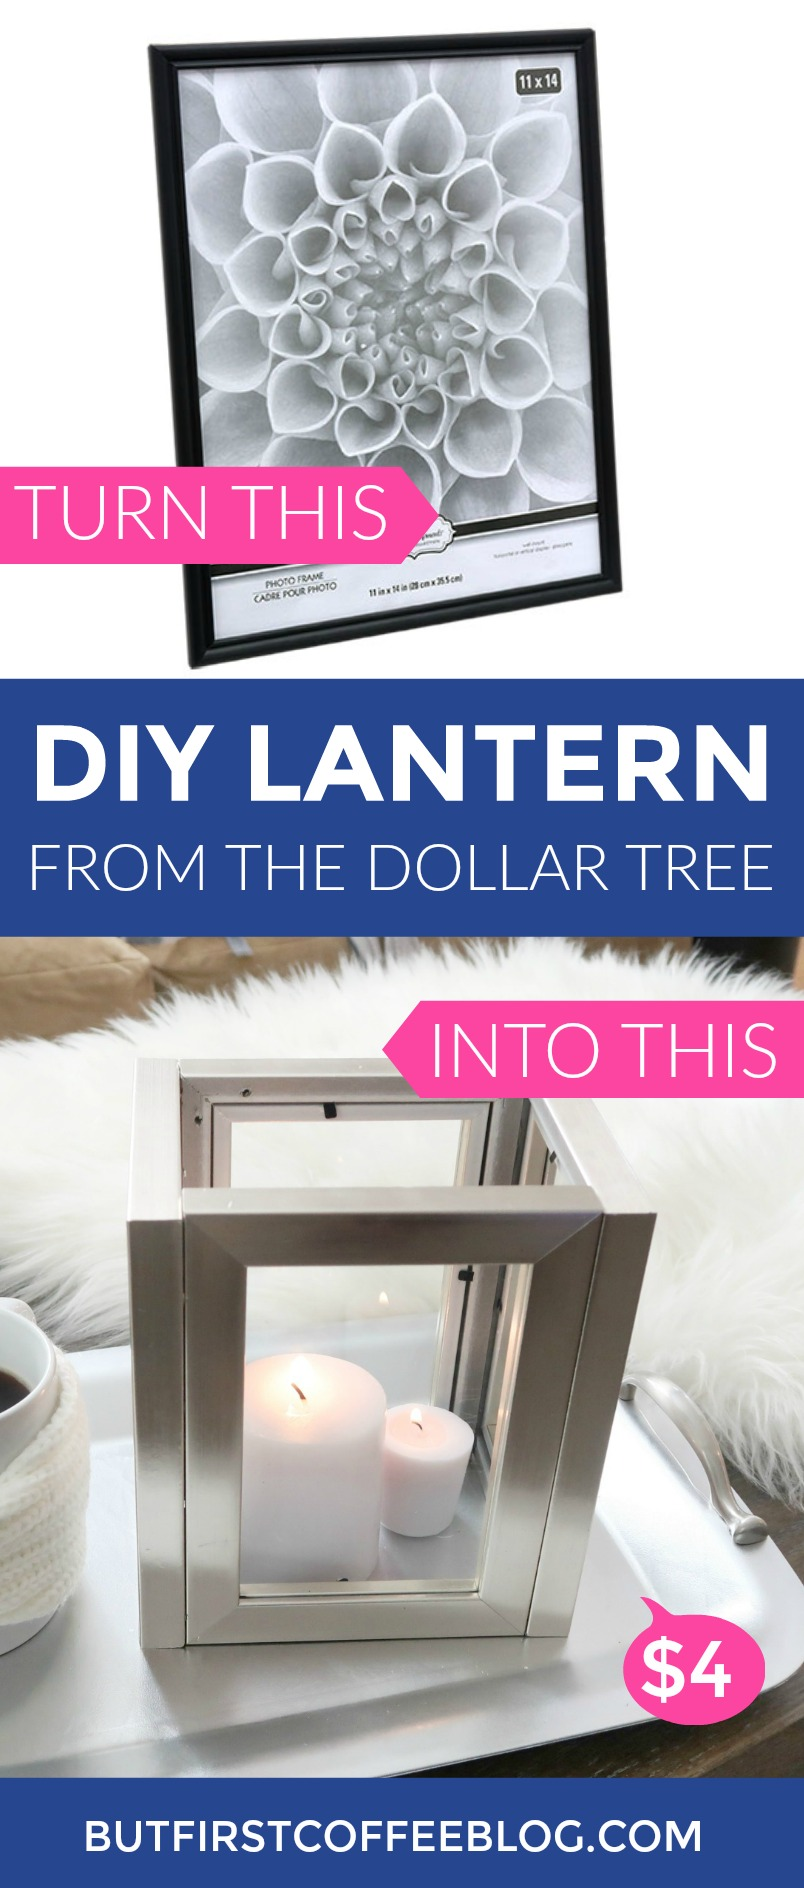 DIY Candle Lantern From the Dollar Tree | How to Make a DIY Picture Frame Lantern